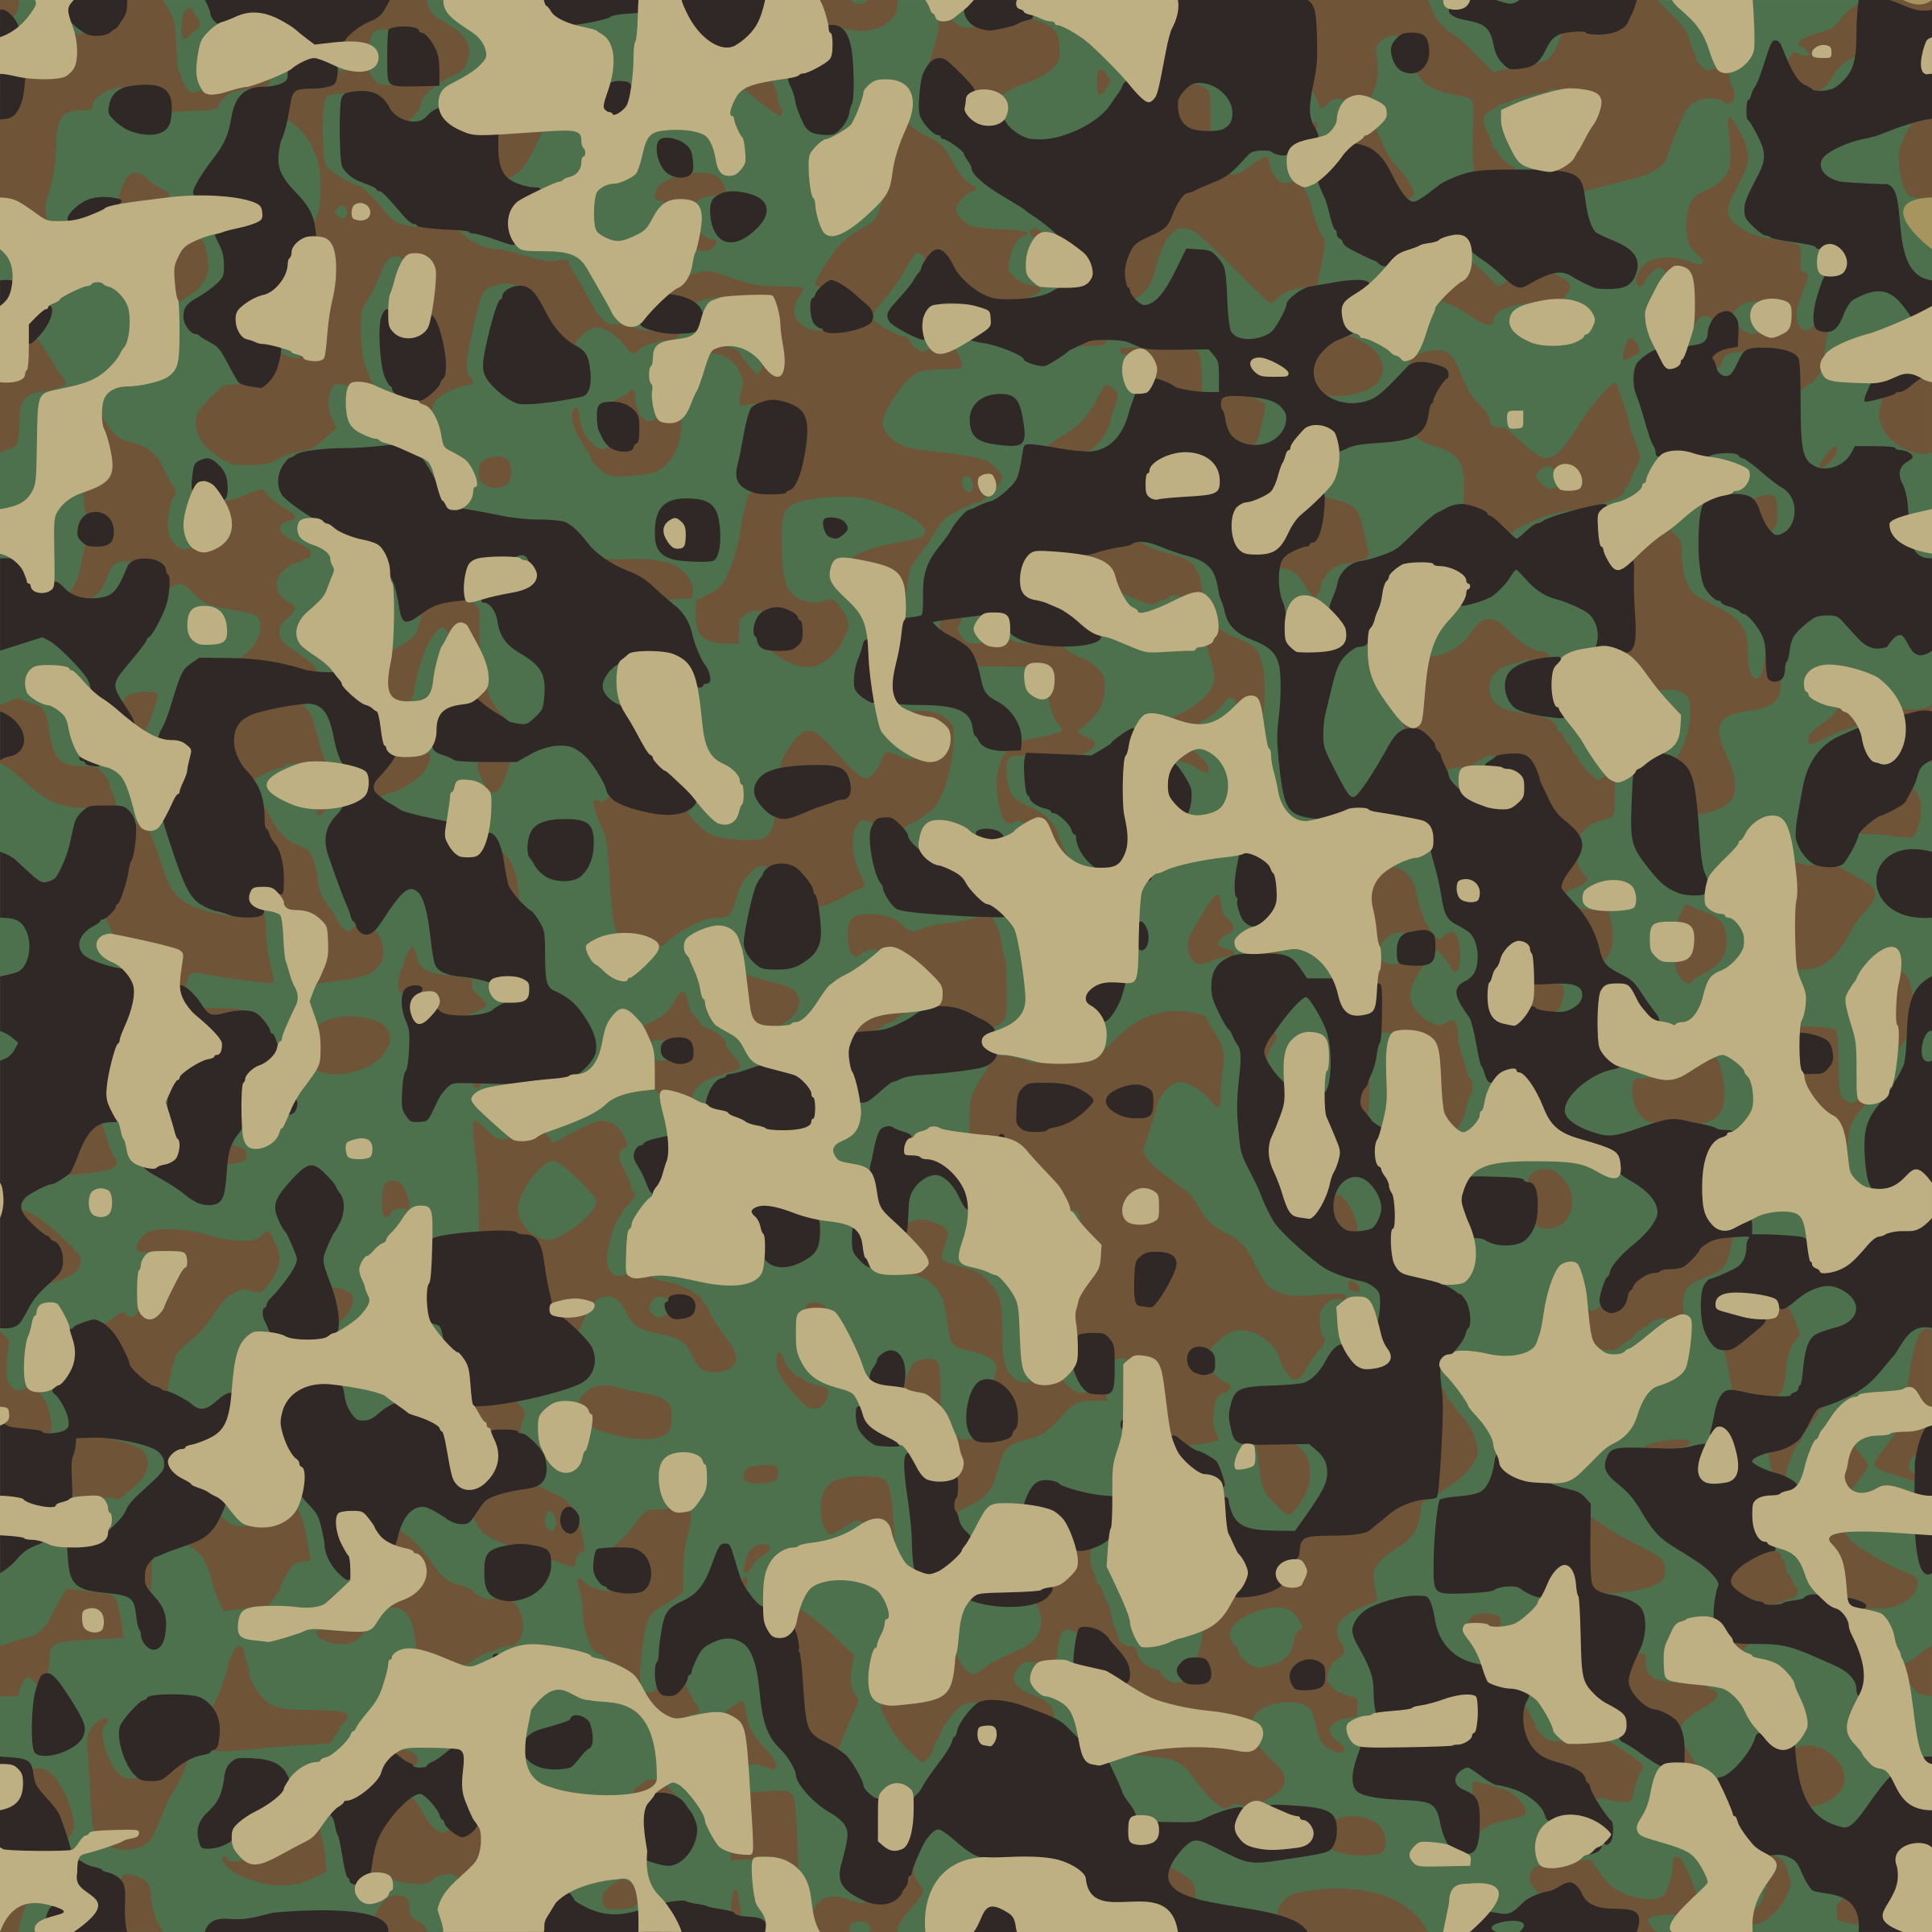 Camo background clipart image library library Army Camouflage Background Clipart - Clip Art Library image library library